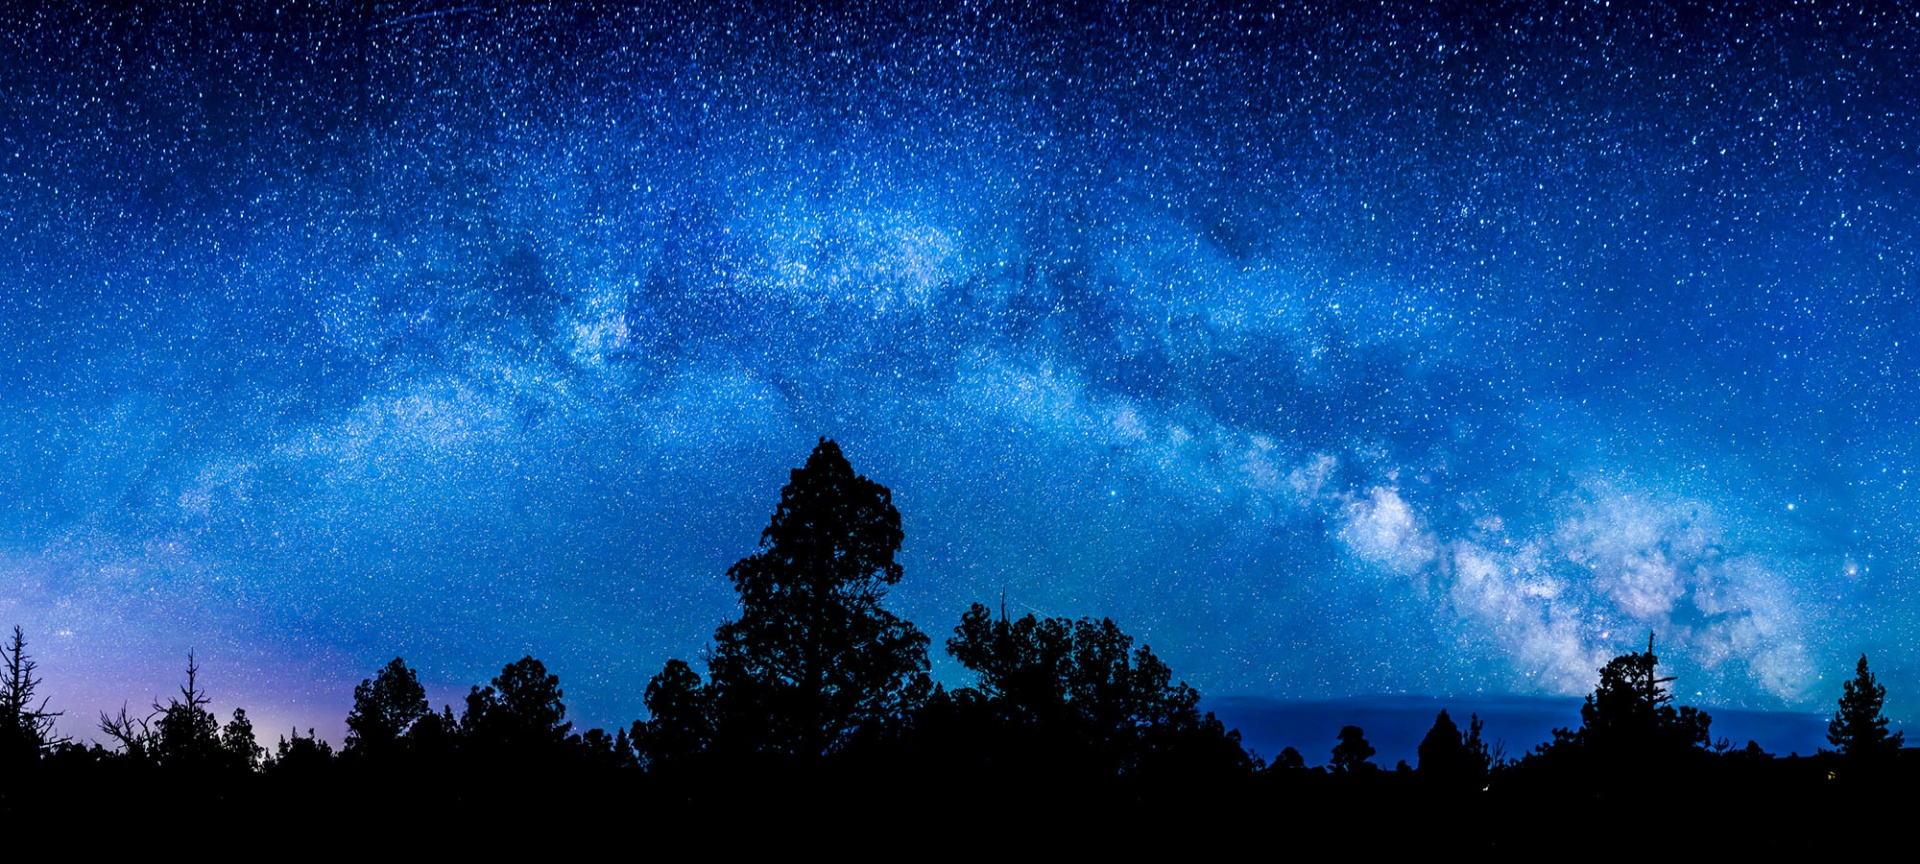 Black Aesthetic Wallpaper Twinkle Twinkle 16 Awesome Public Lands For Stargazing